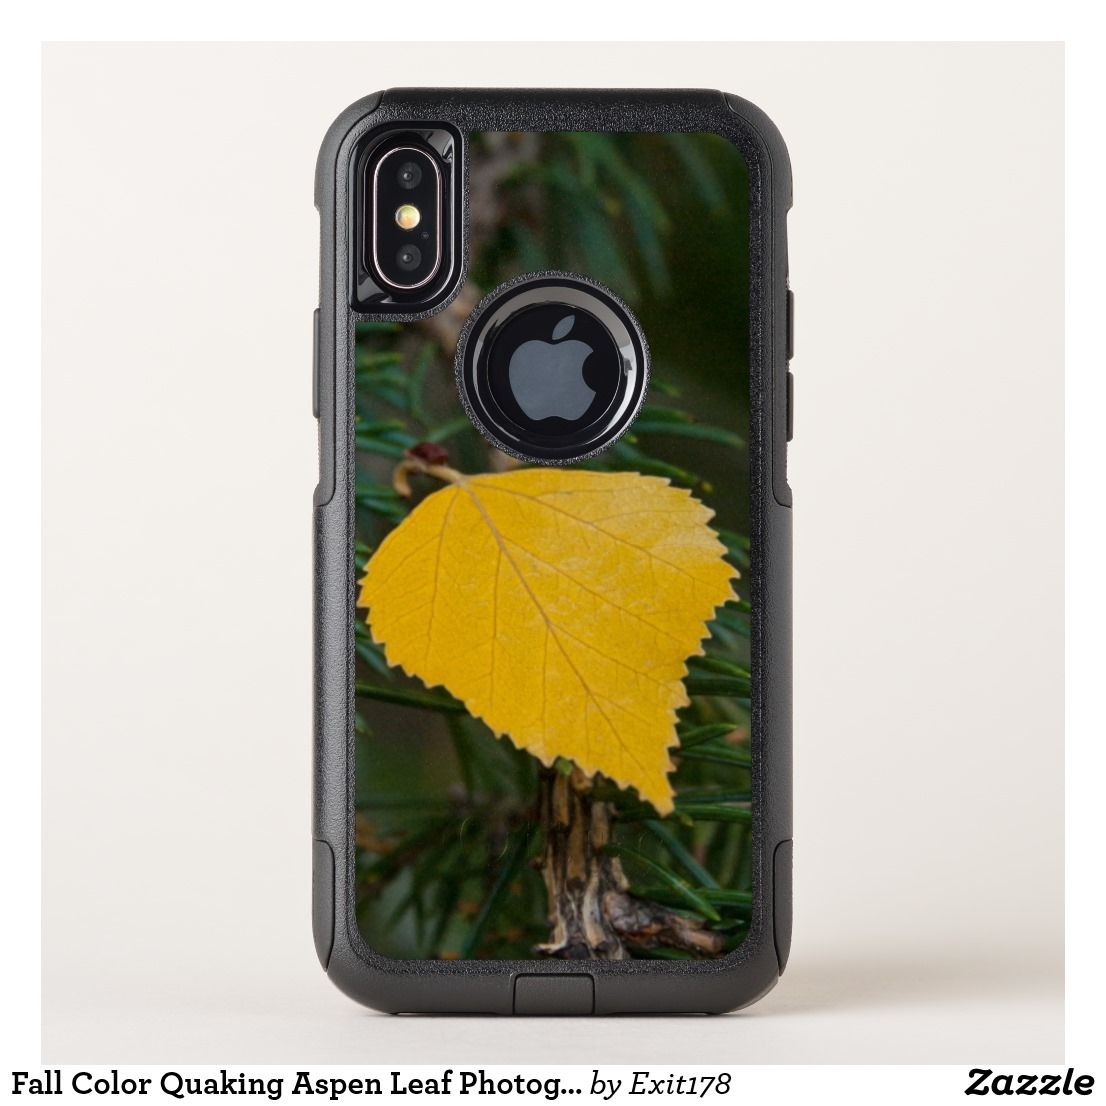 Iphone Case Thin Slim Goospery Flexible Pearl Jelly Perfect X Red Fall Color Quaking Aspen Leaf Photograph Otterbox Commuter